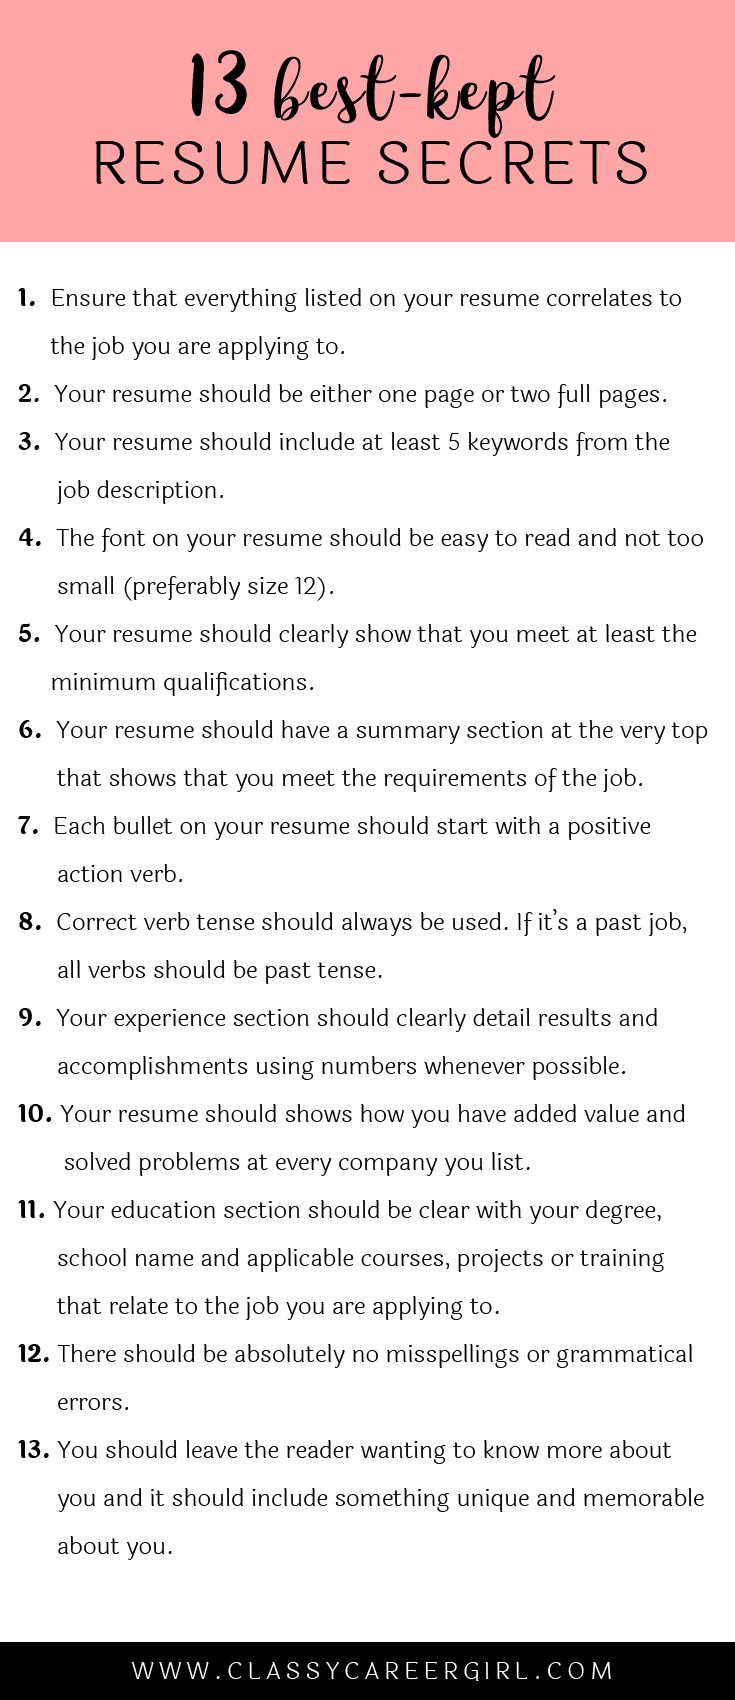 Opposenewapstandardsus  Inspiring  Ideas About Resume On Pinterest  Cv Format Resume  With Licious Some Hiring Managers Will Toss Your Resume Out If You Dont Know These  With Astounding Words To Describe Yourself On Resume Also Resume Templates Microsoft Word  In Addition Beginner Resume Template And Resumes For Older Workers As Well As Benefits Manager Resume Additionally Buzz Words For Resumes From Pinterestcom With Opposenewapstandardsus  Licious  Ideas About Resume On Pinterest  Cv Format Resume  With Astounding Some Hiring Managers Will Toss Your Resume Out If You Dont Know These  And Inspiring Words To Describe Yourself On Resume Also Resume Templates Microsoft Word  In Addition Beginner Resume Template From Pinterestcom